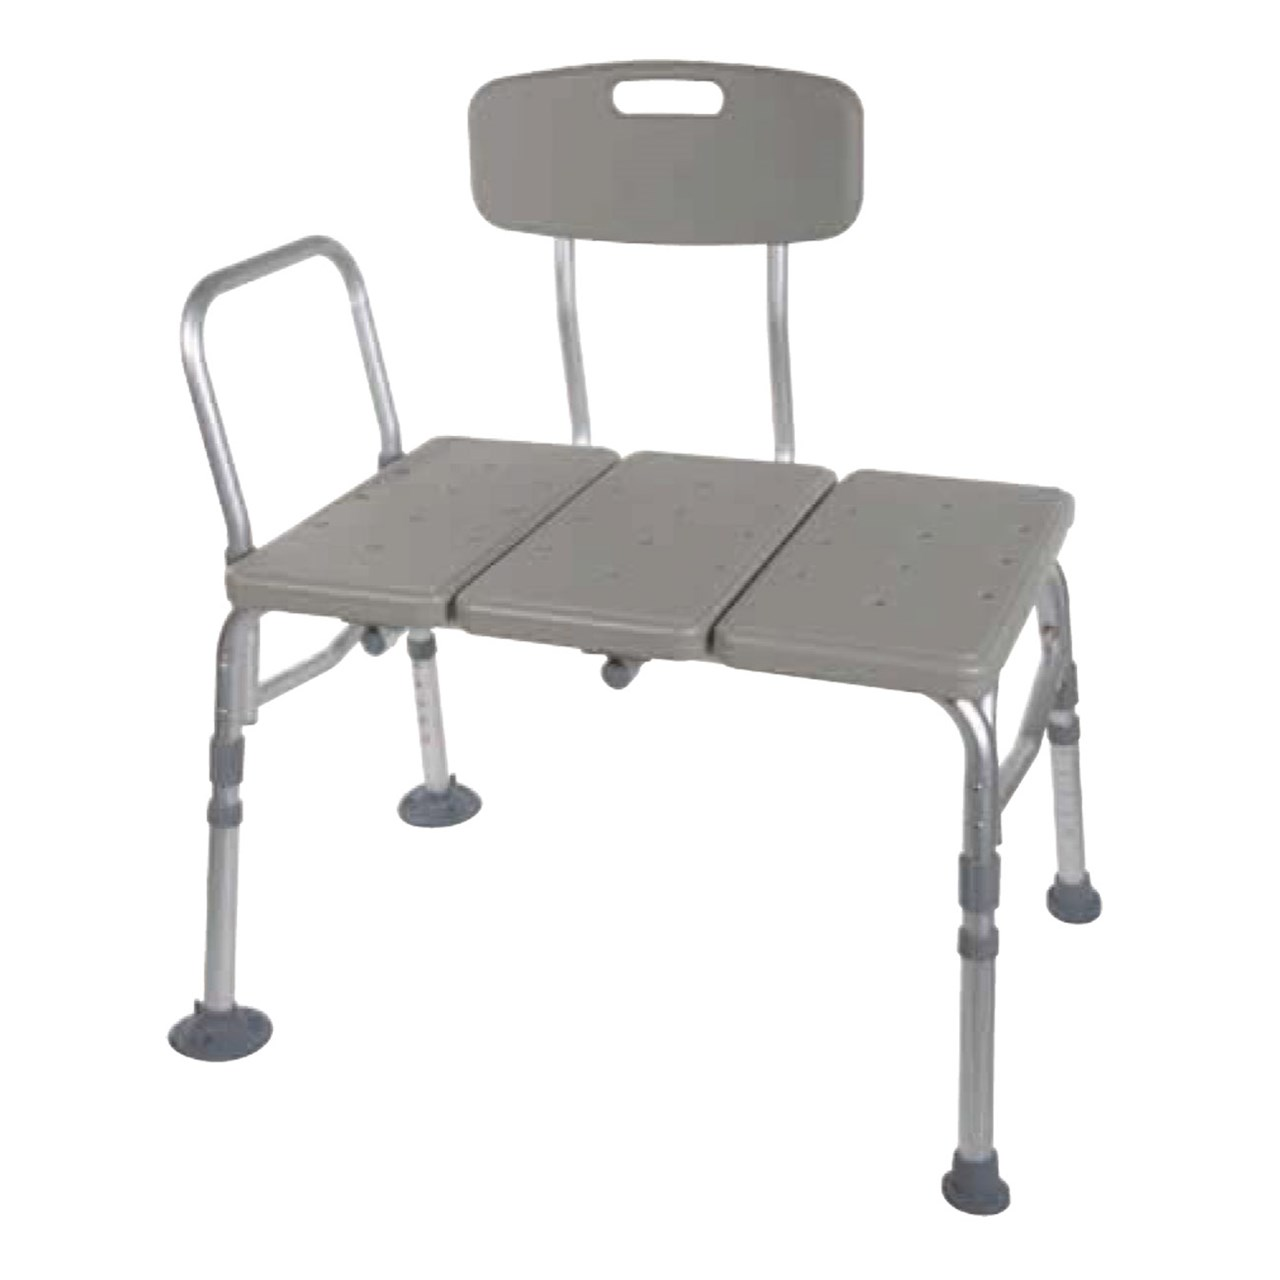 Chair For Bathtub Maxiaids Bathtub Transfer Bench